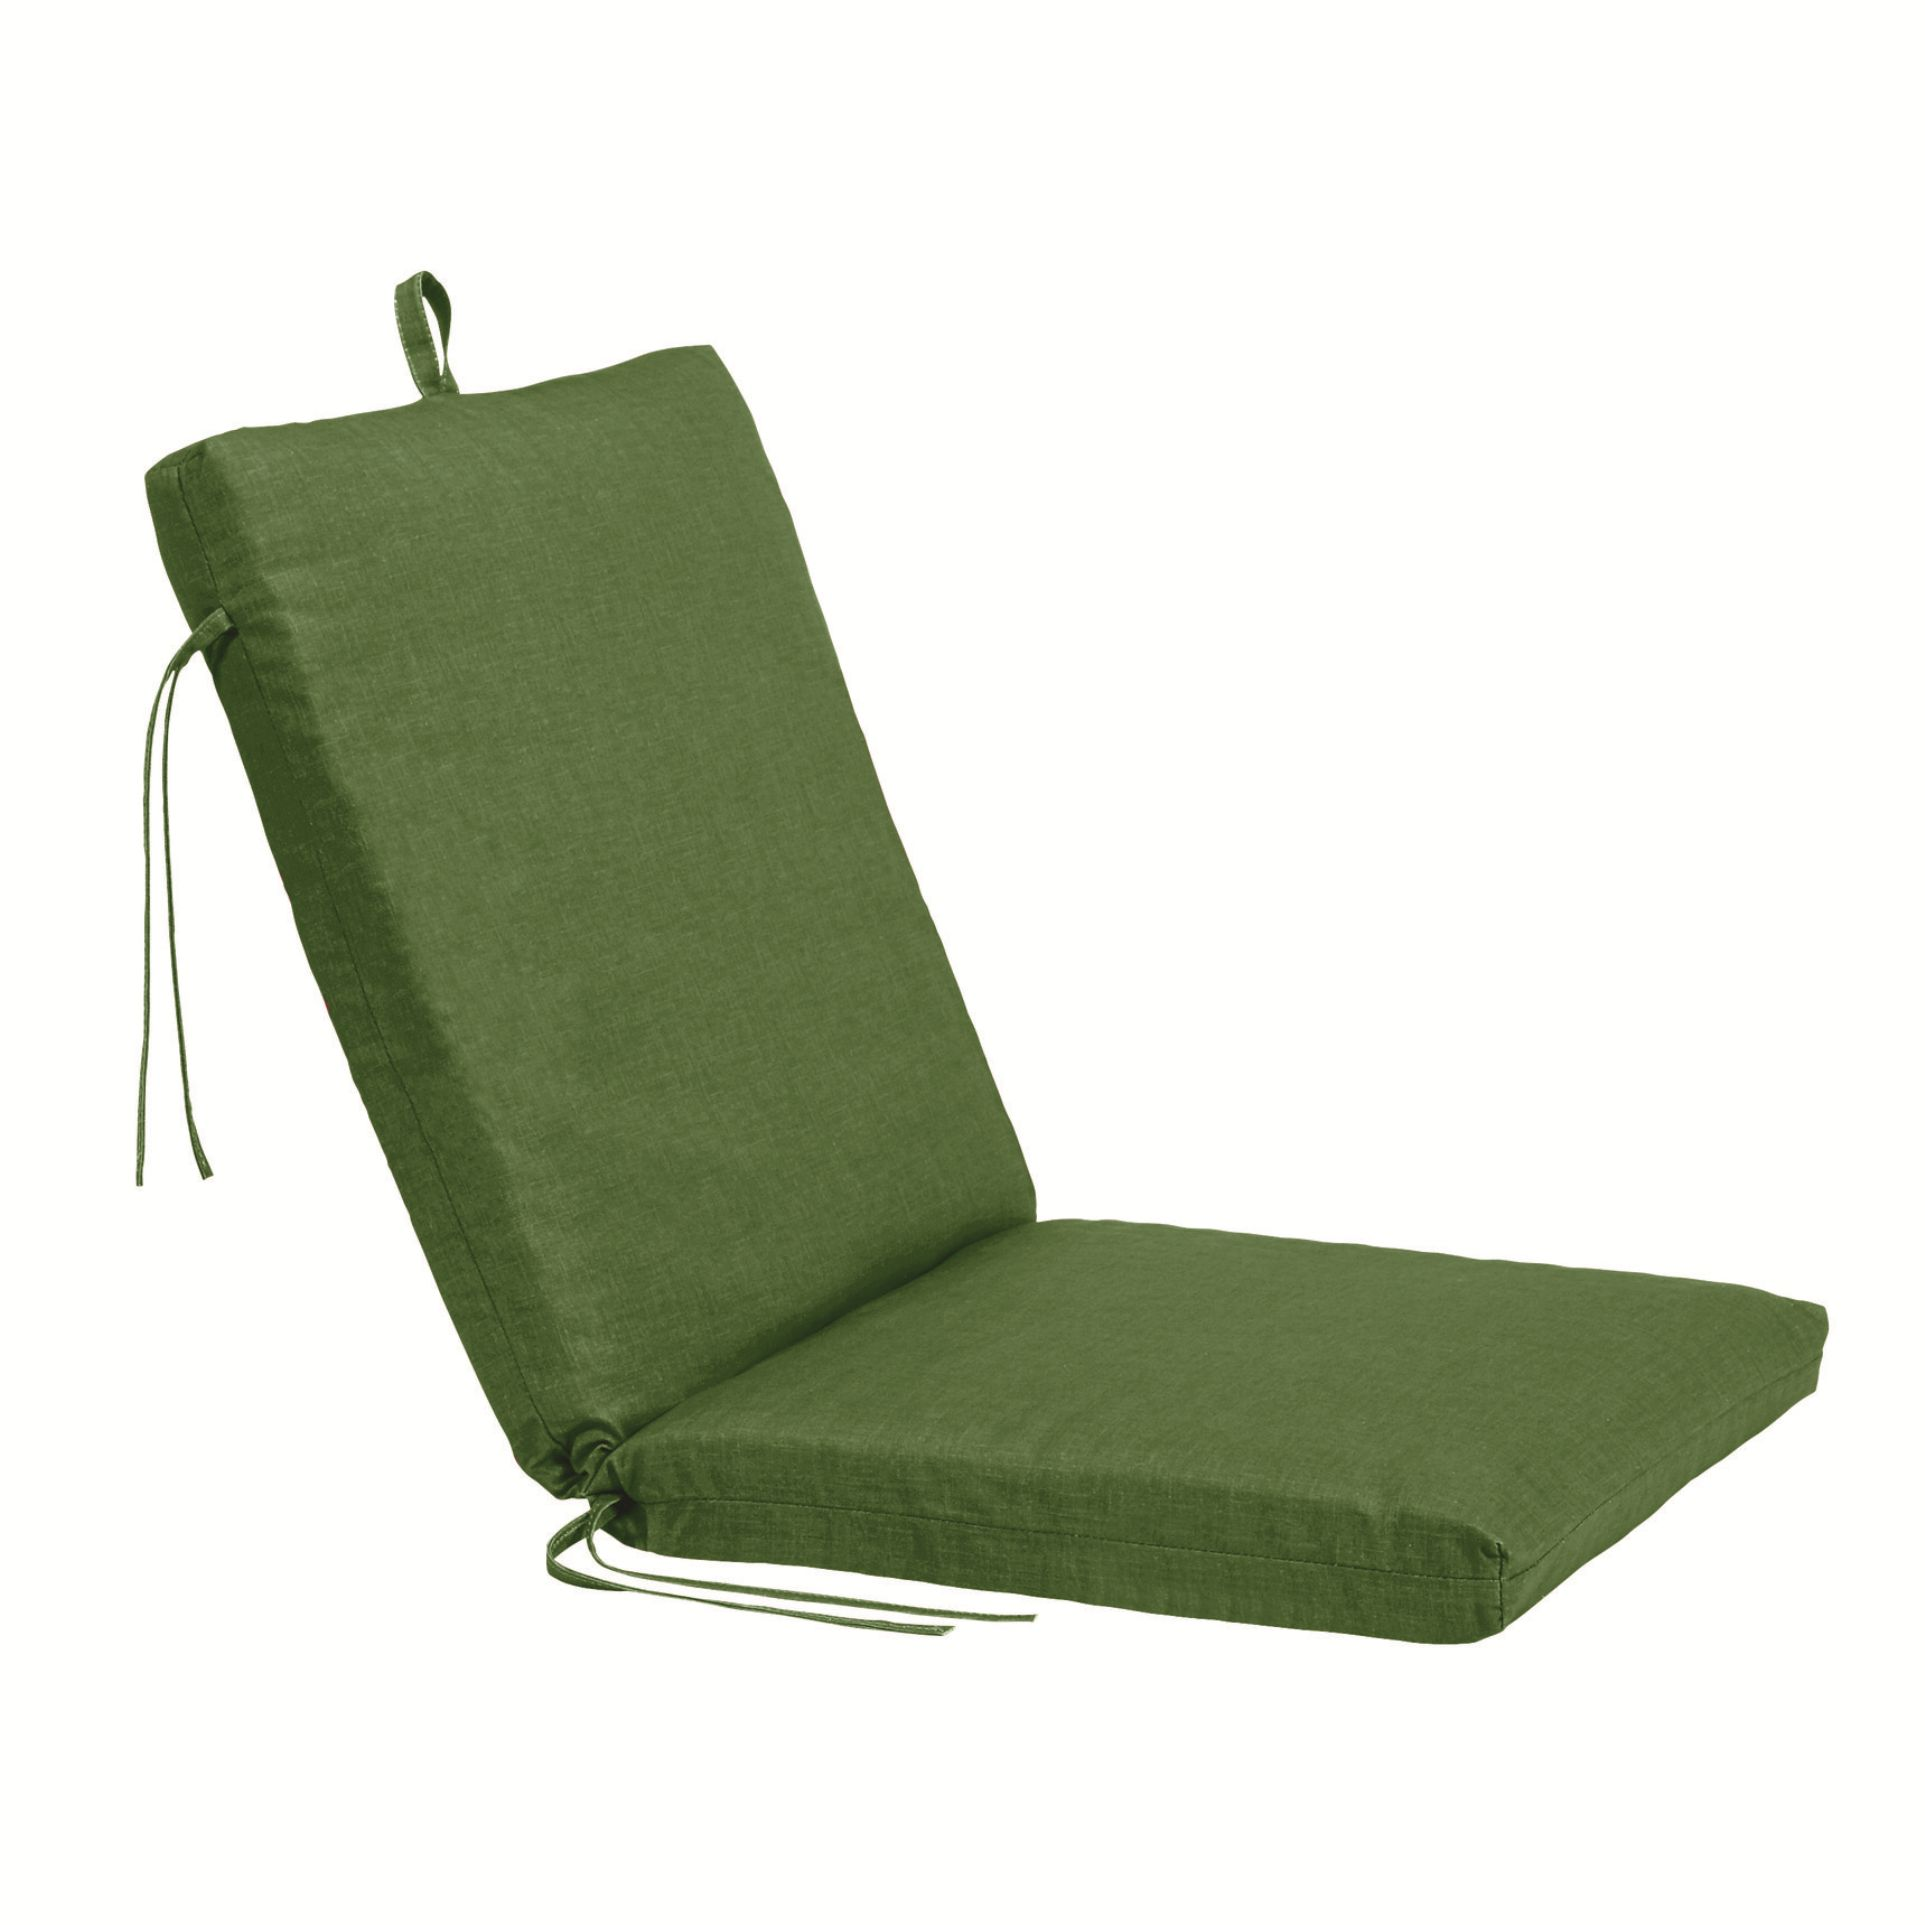 kmart chair cushions ergonomic design guidelines essential garden johnston replacement seat and back